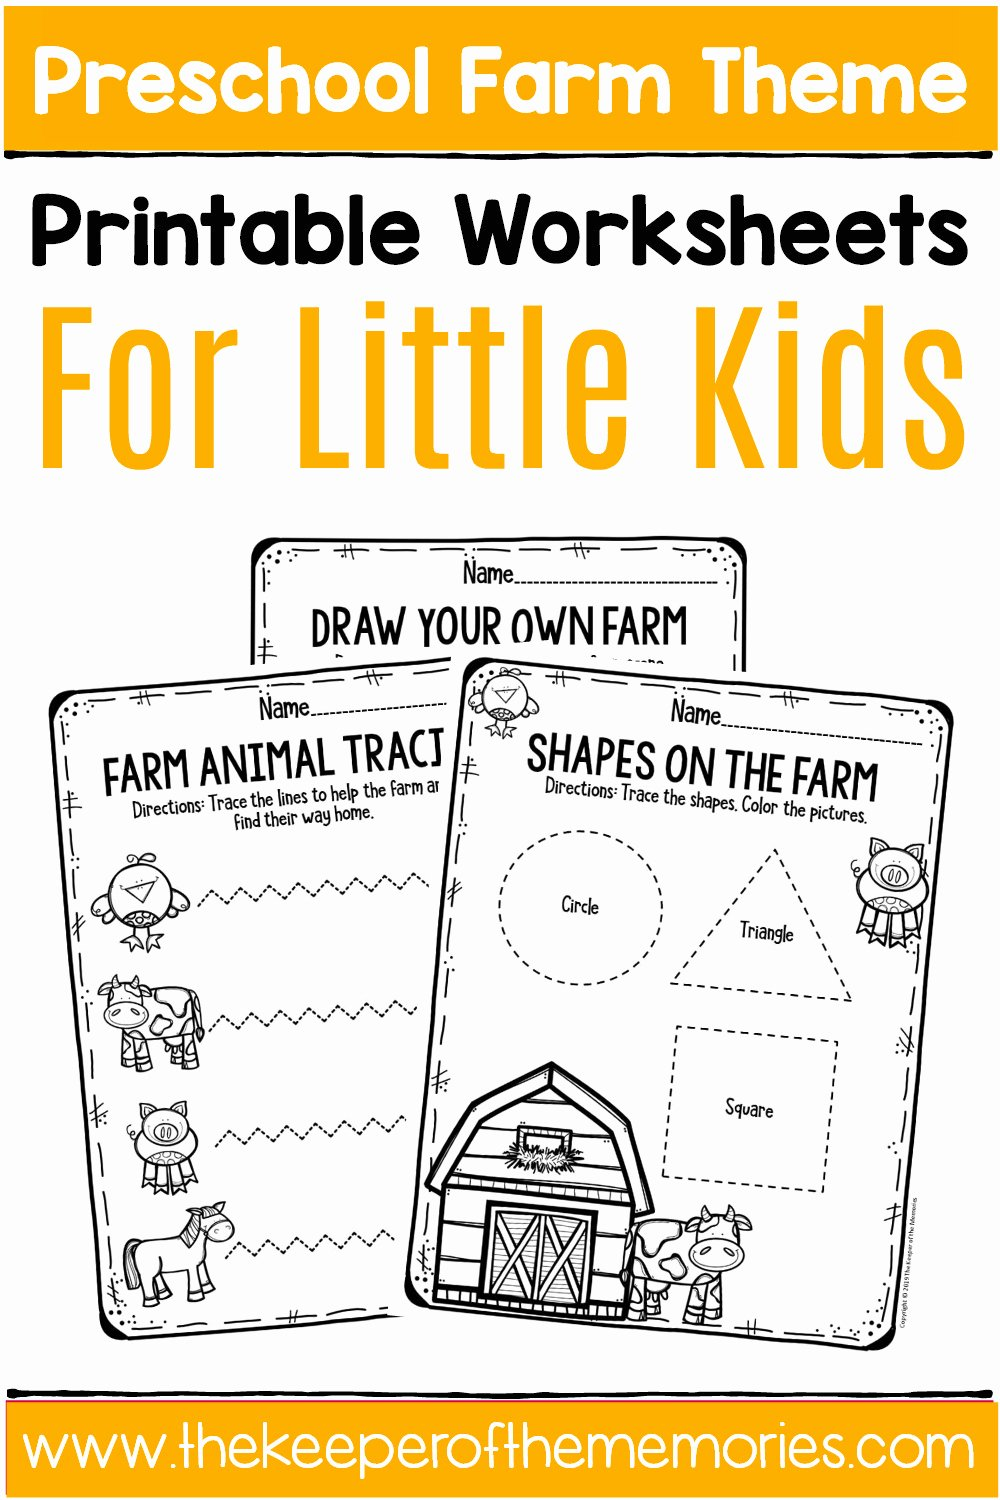 Free Printable Farm Worksheets for Preschoolers Lovely Free Printable Farm Preschool Worksheets the Keeper